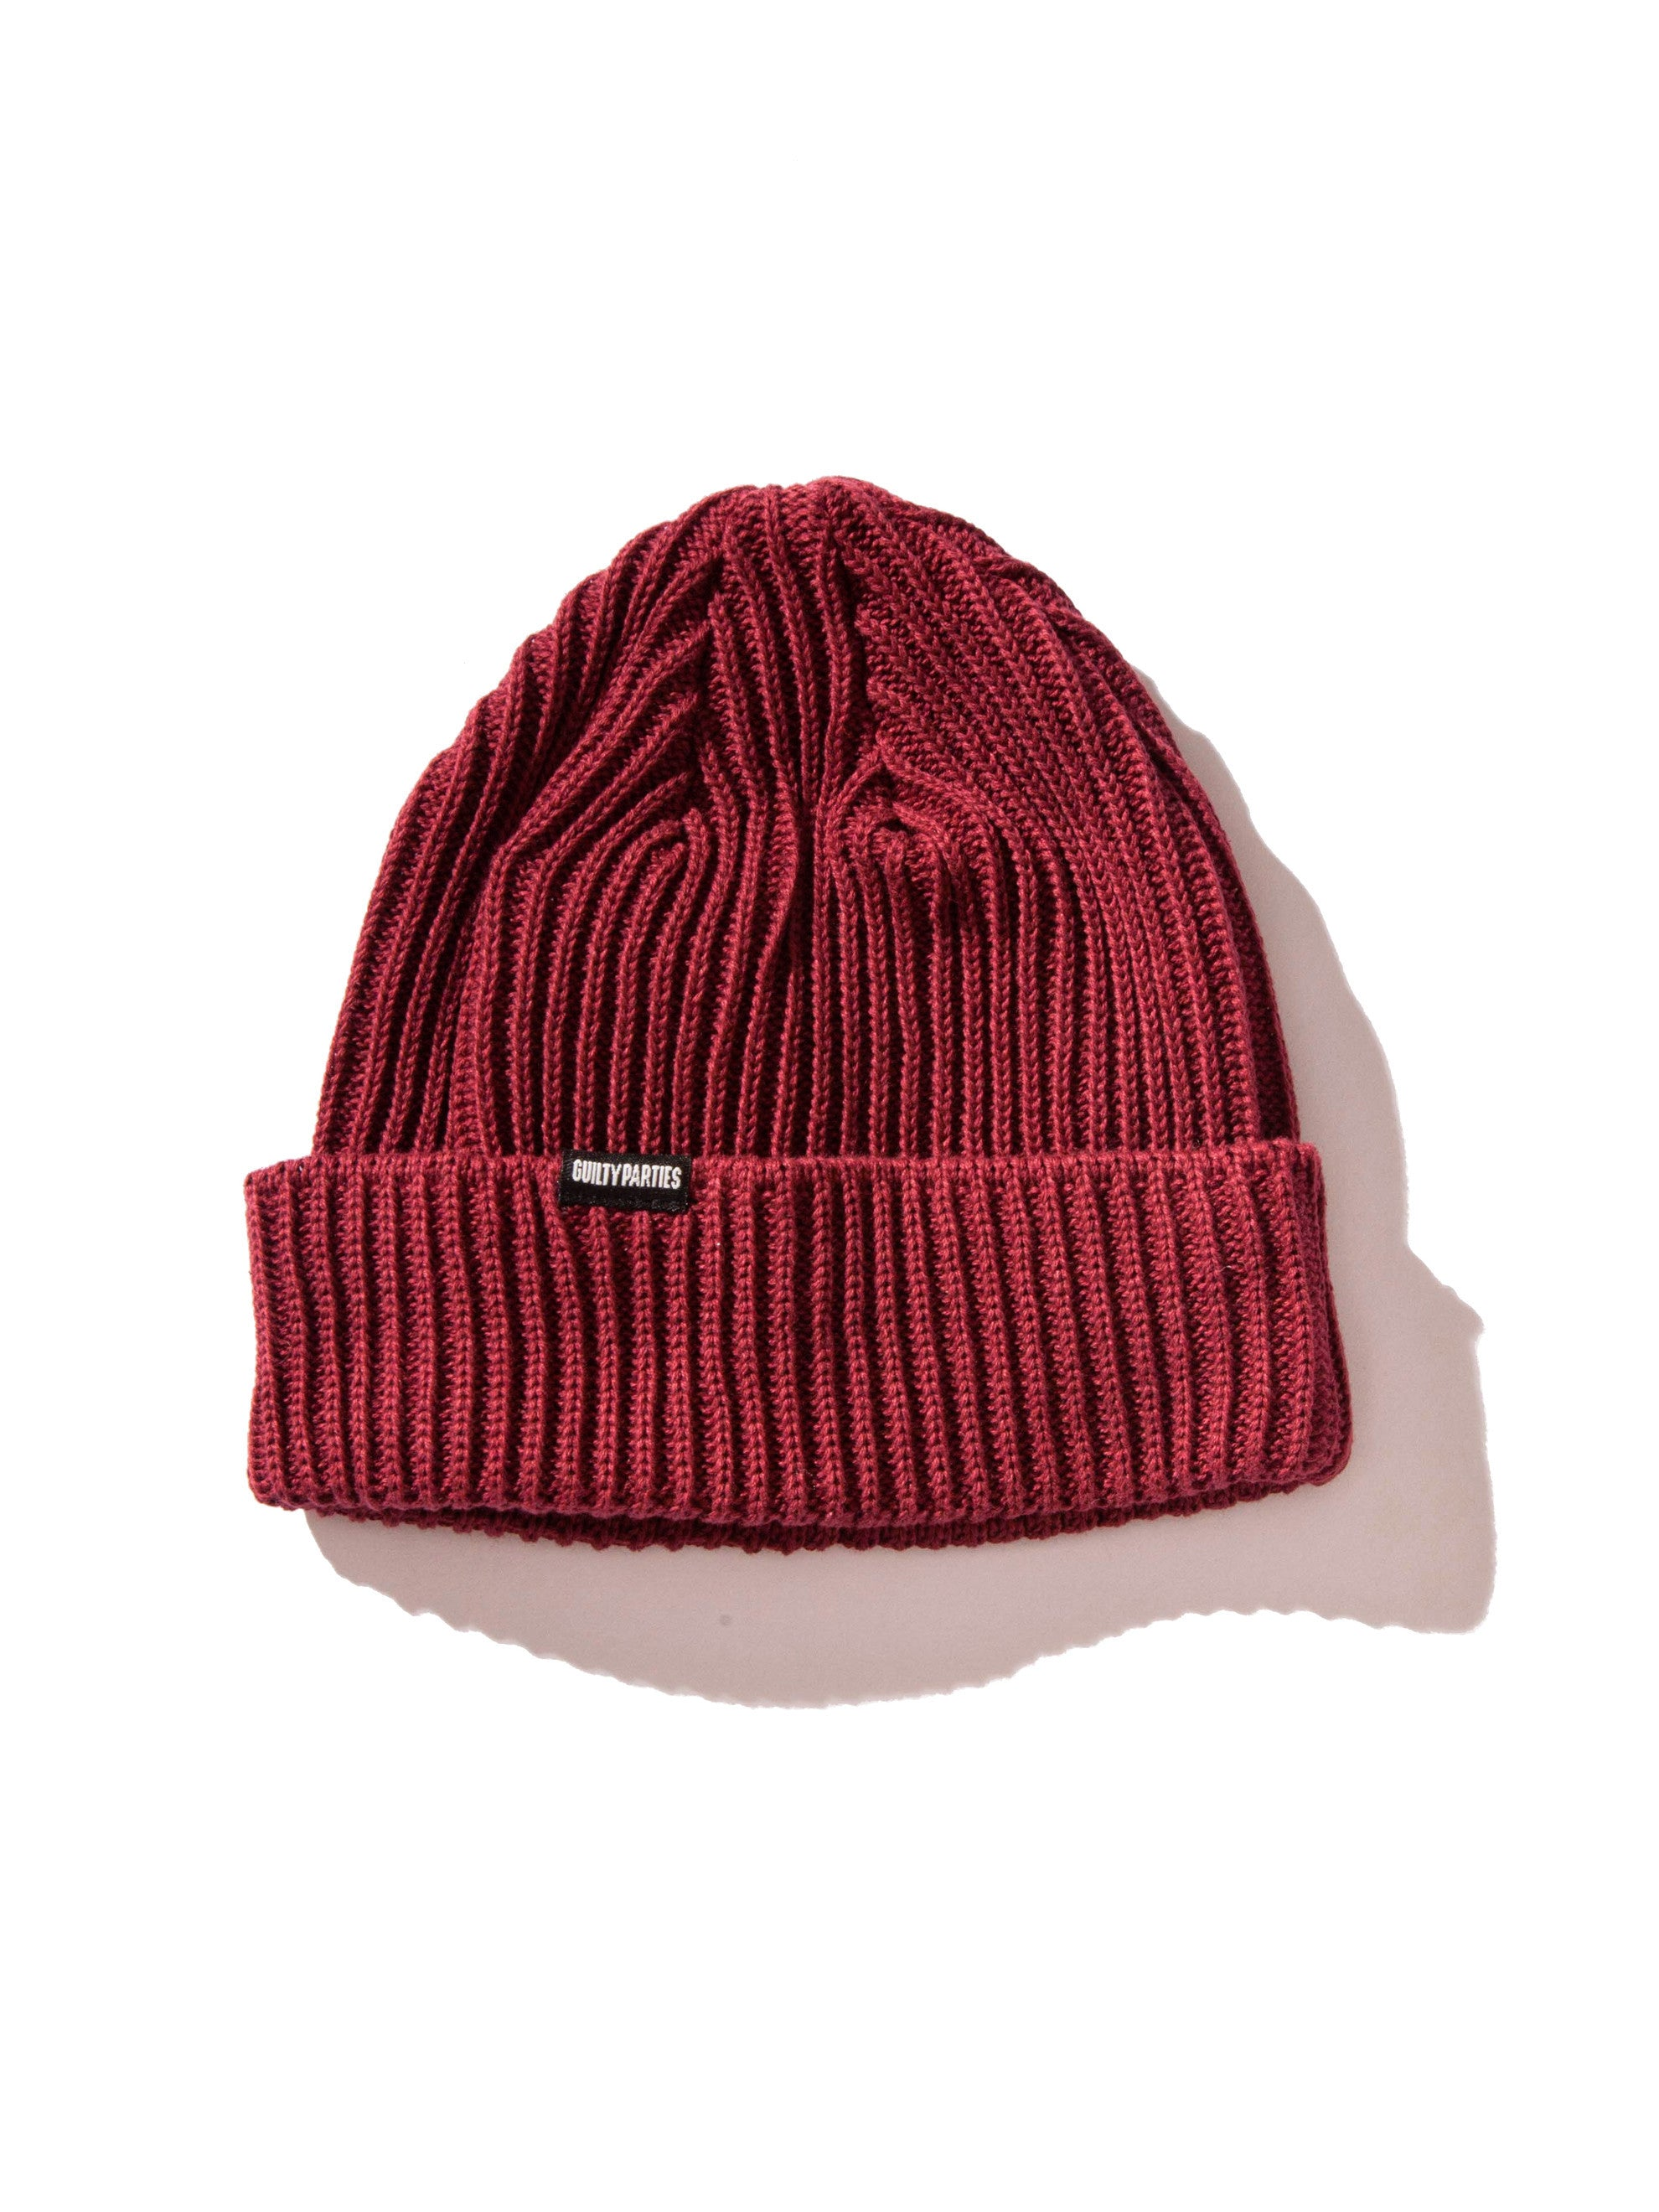 Burgundy Plain Knit Watch Cap 4